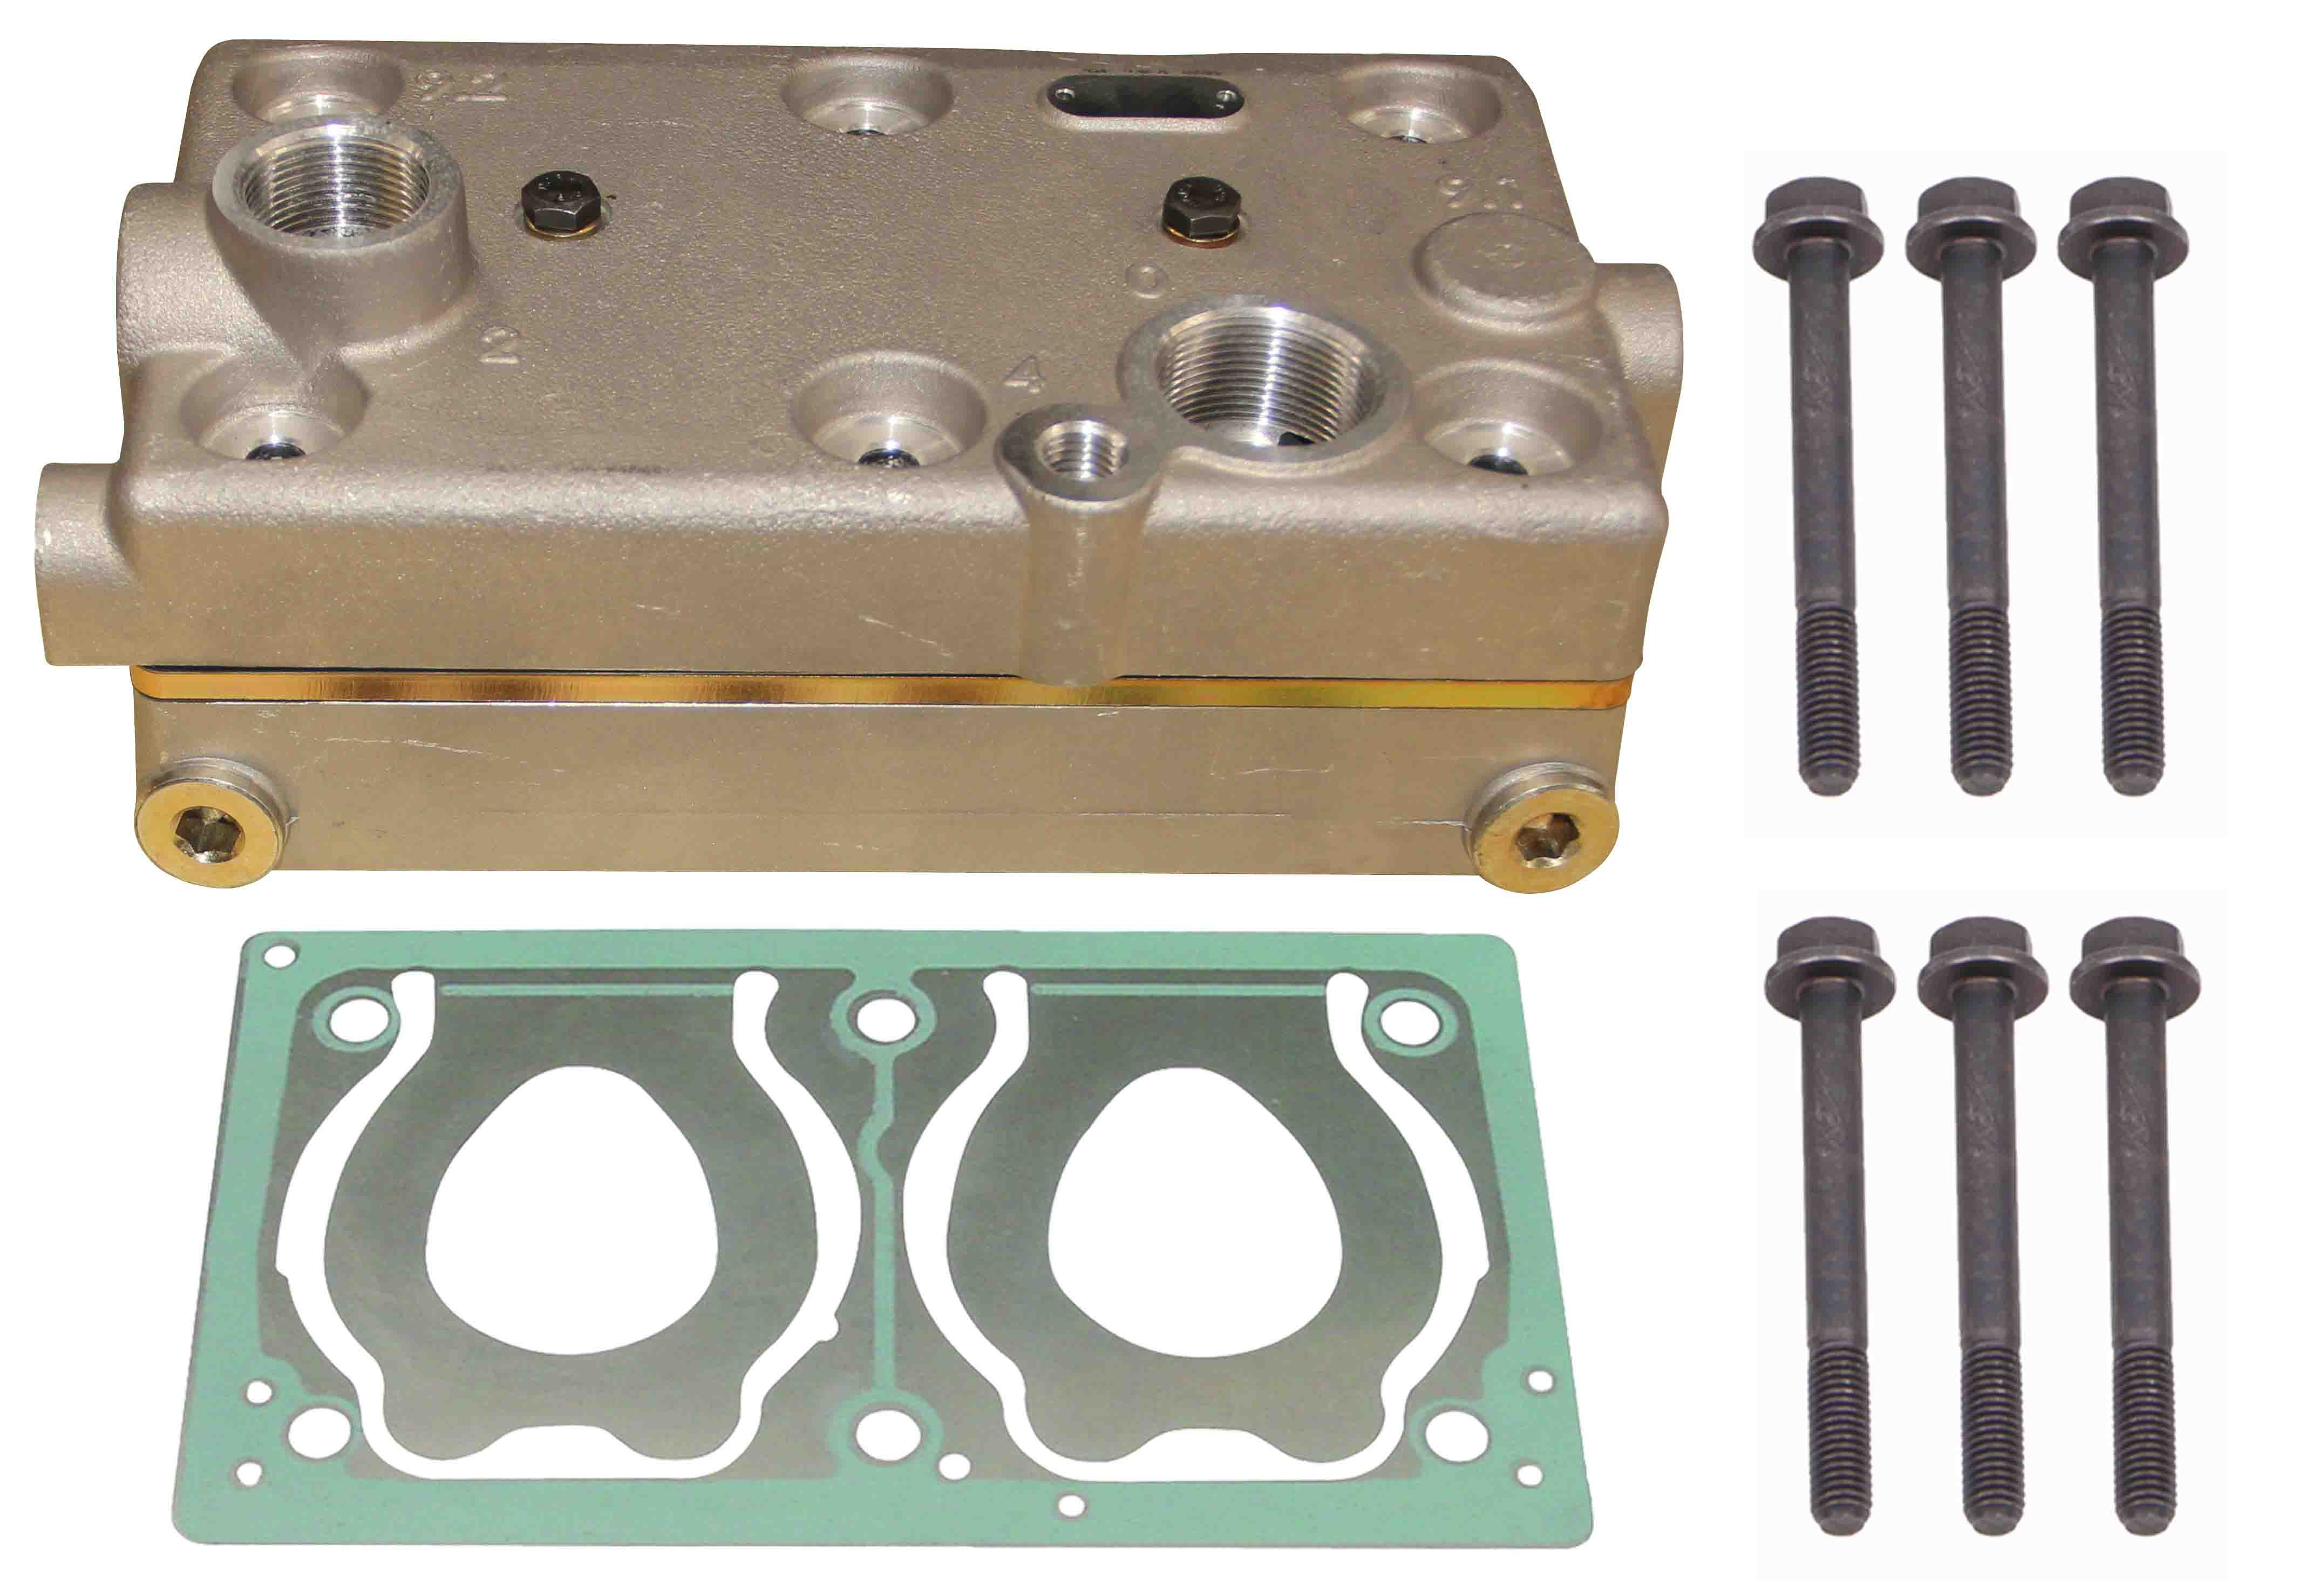 MERCEDES CYLINDER HEAD WIHT PLATE KIT ARC-EXP.304702 0011310815